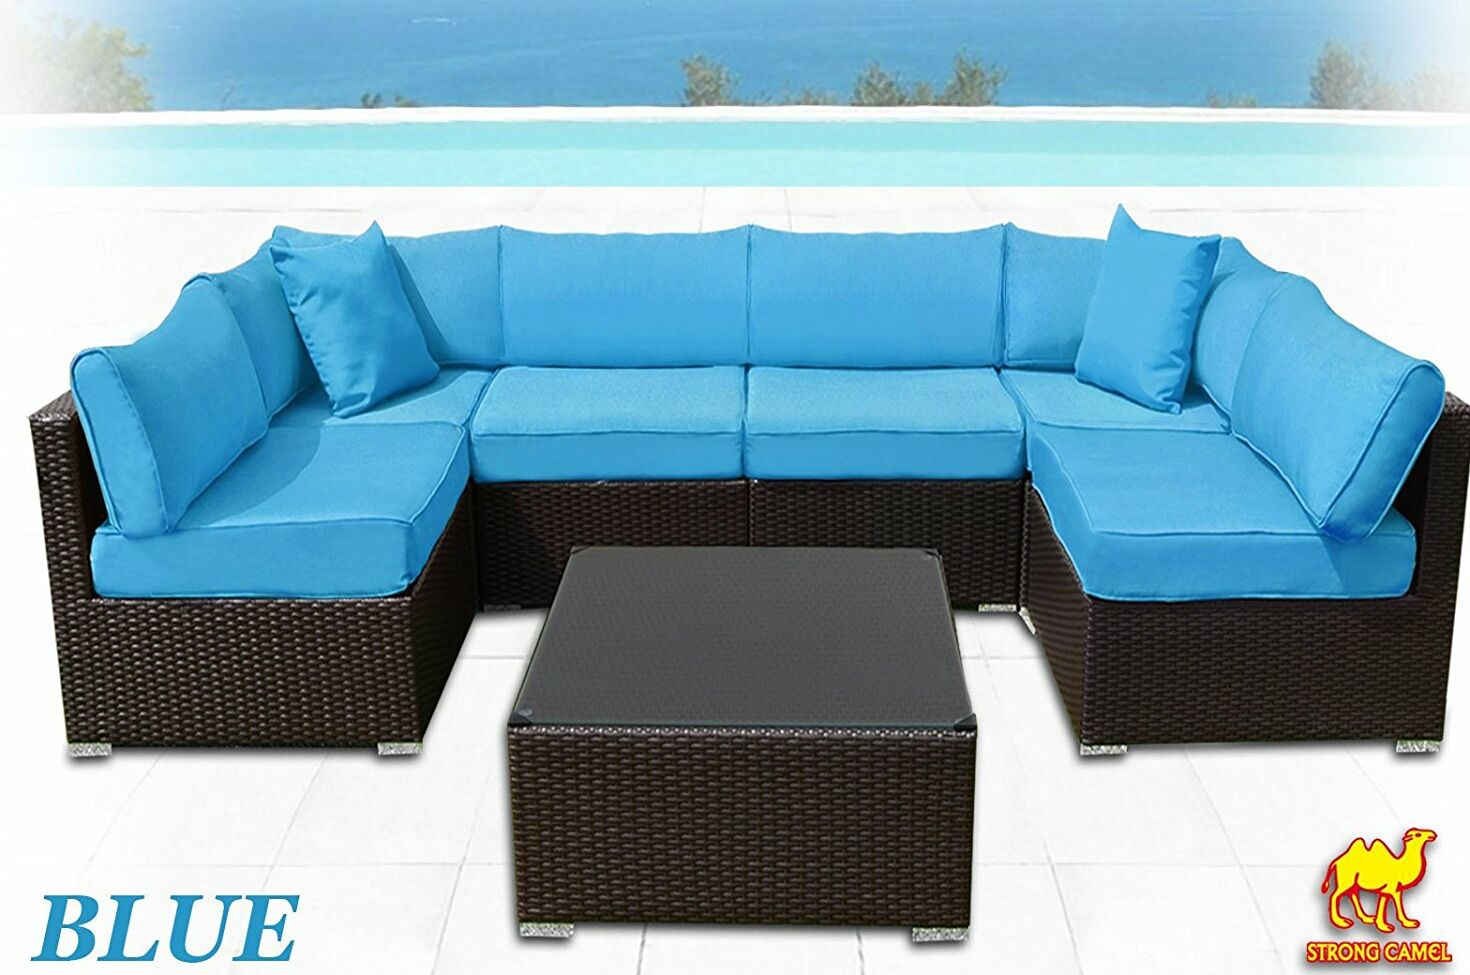 Ilebo 7 Piece Rattan Sectional Set with Cushions Fabric: Blue